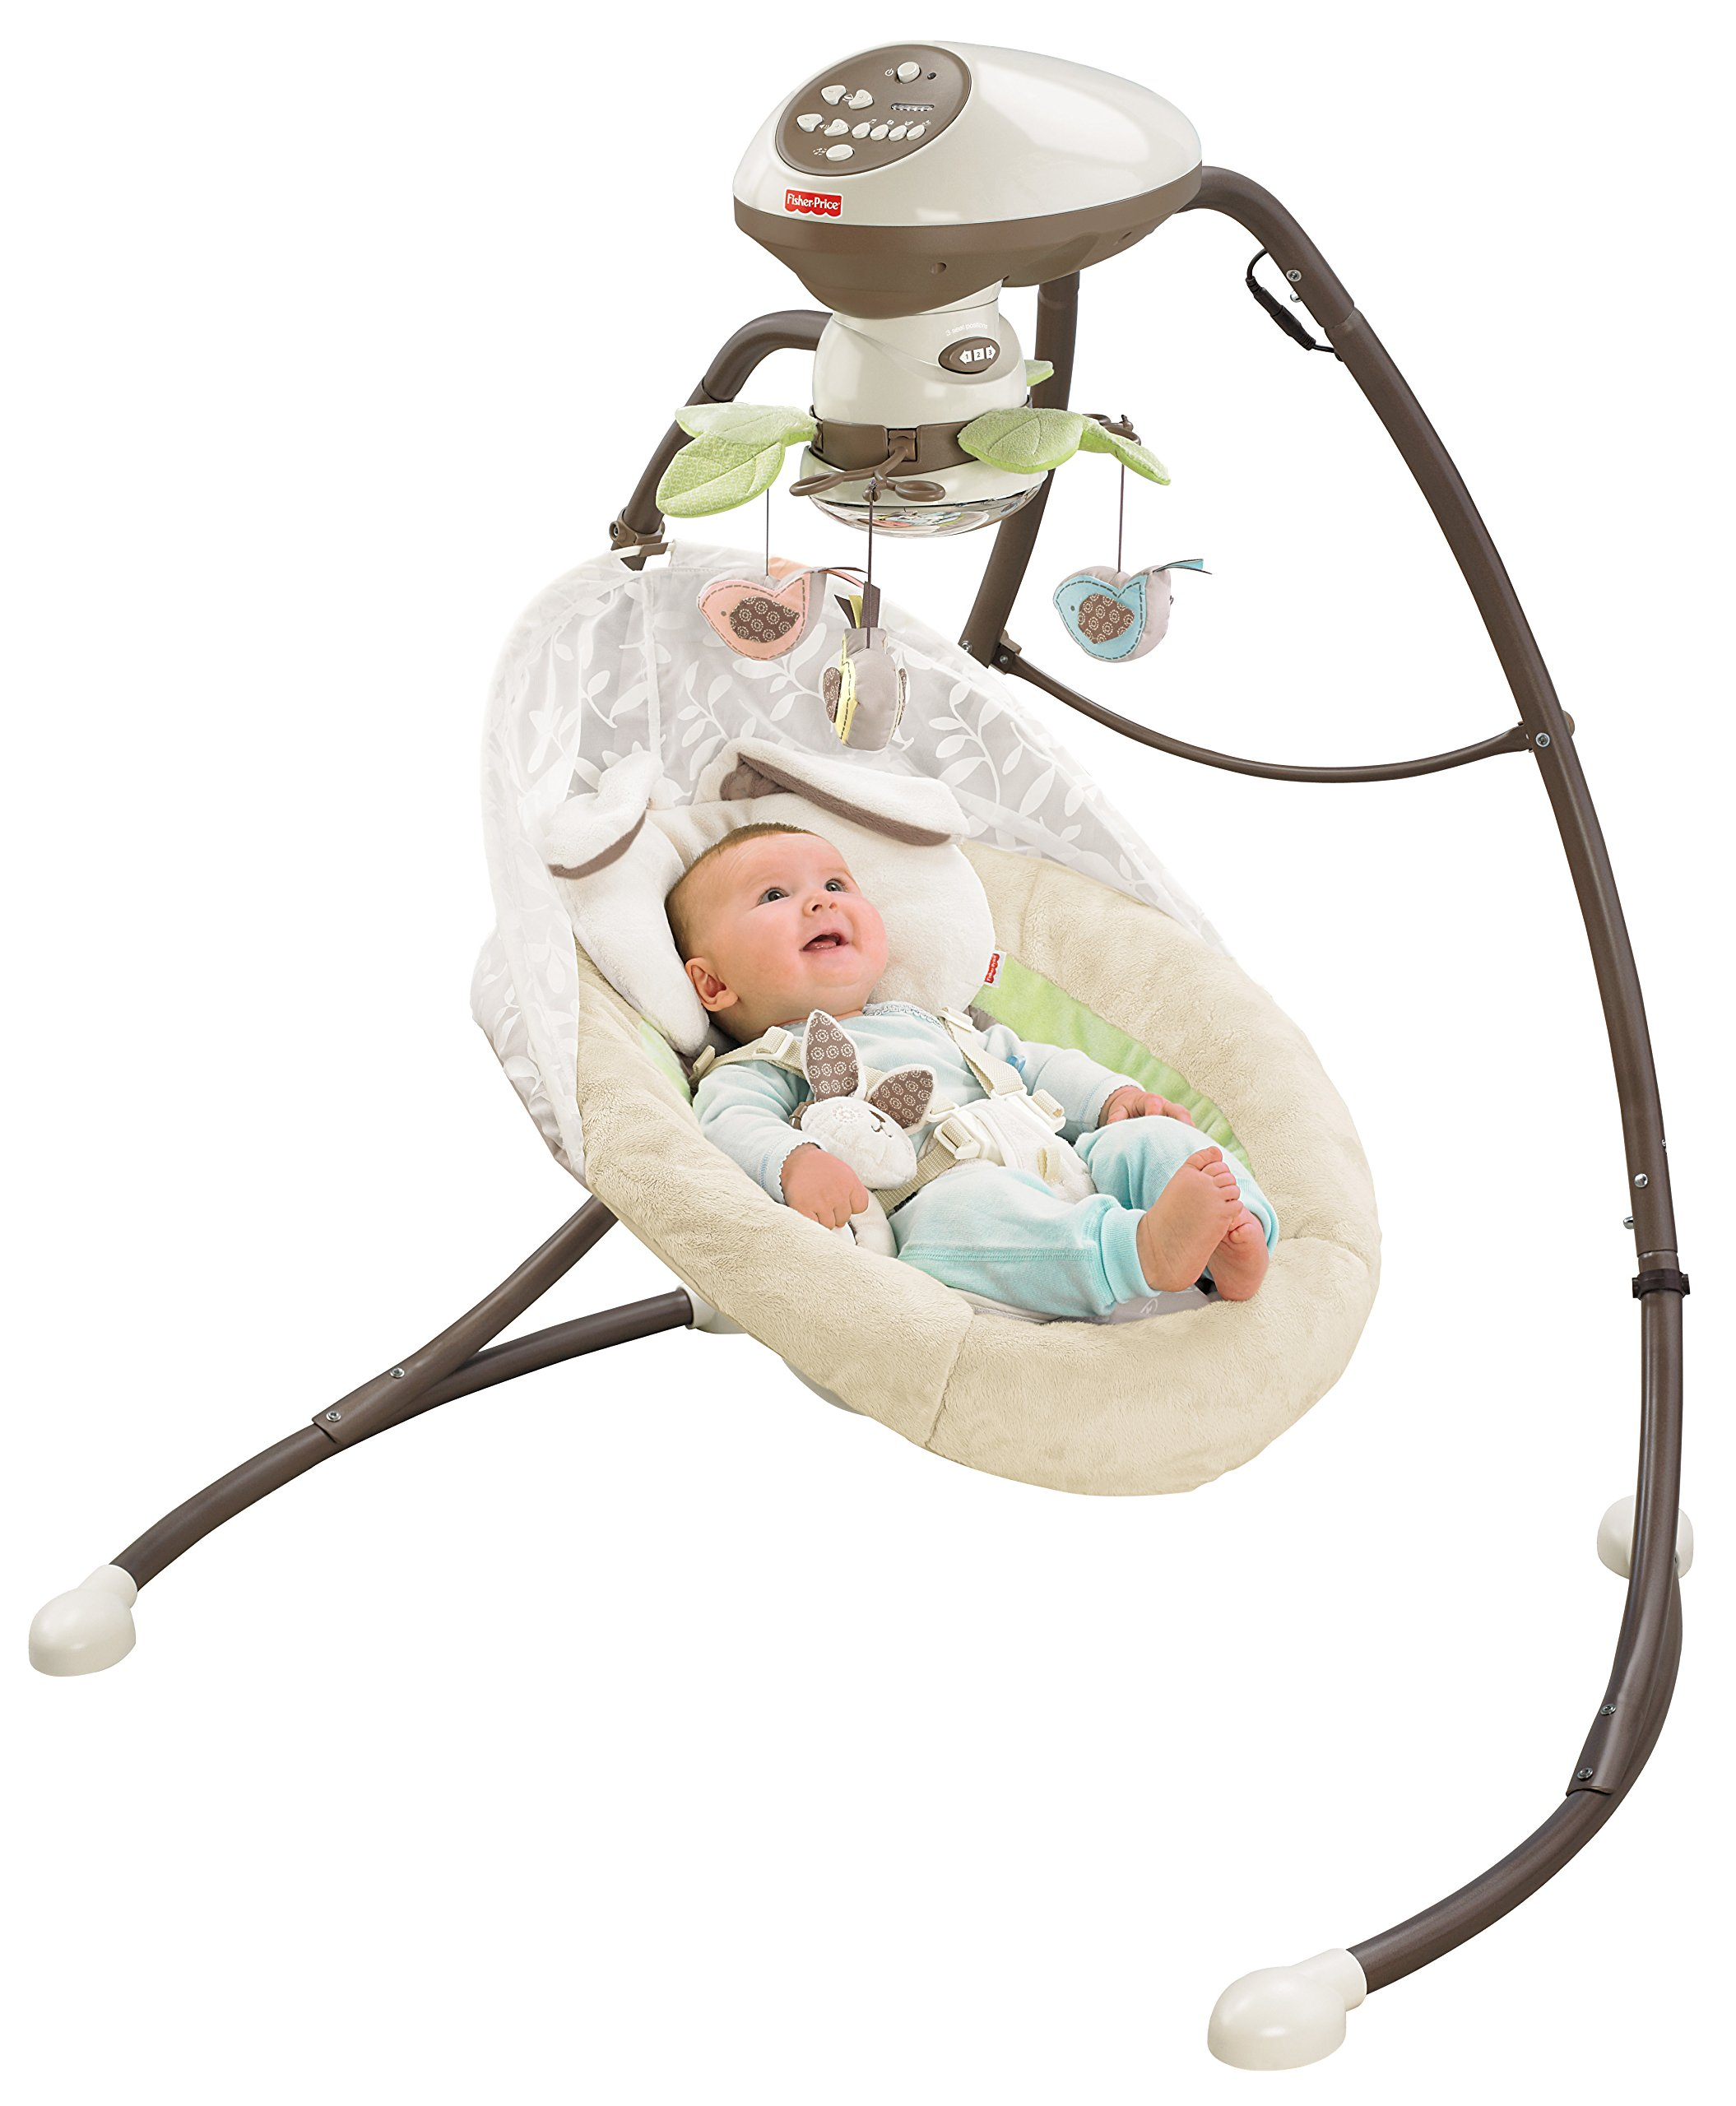 Fisher-Price Snugabunny Cradle 'n Swing with Smart Swing Technology by Fisher-Price (Image #11)